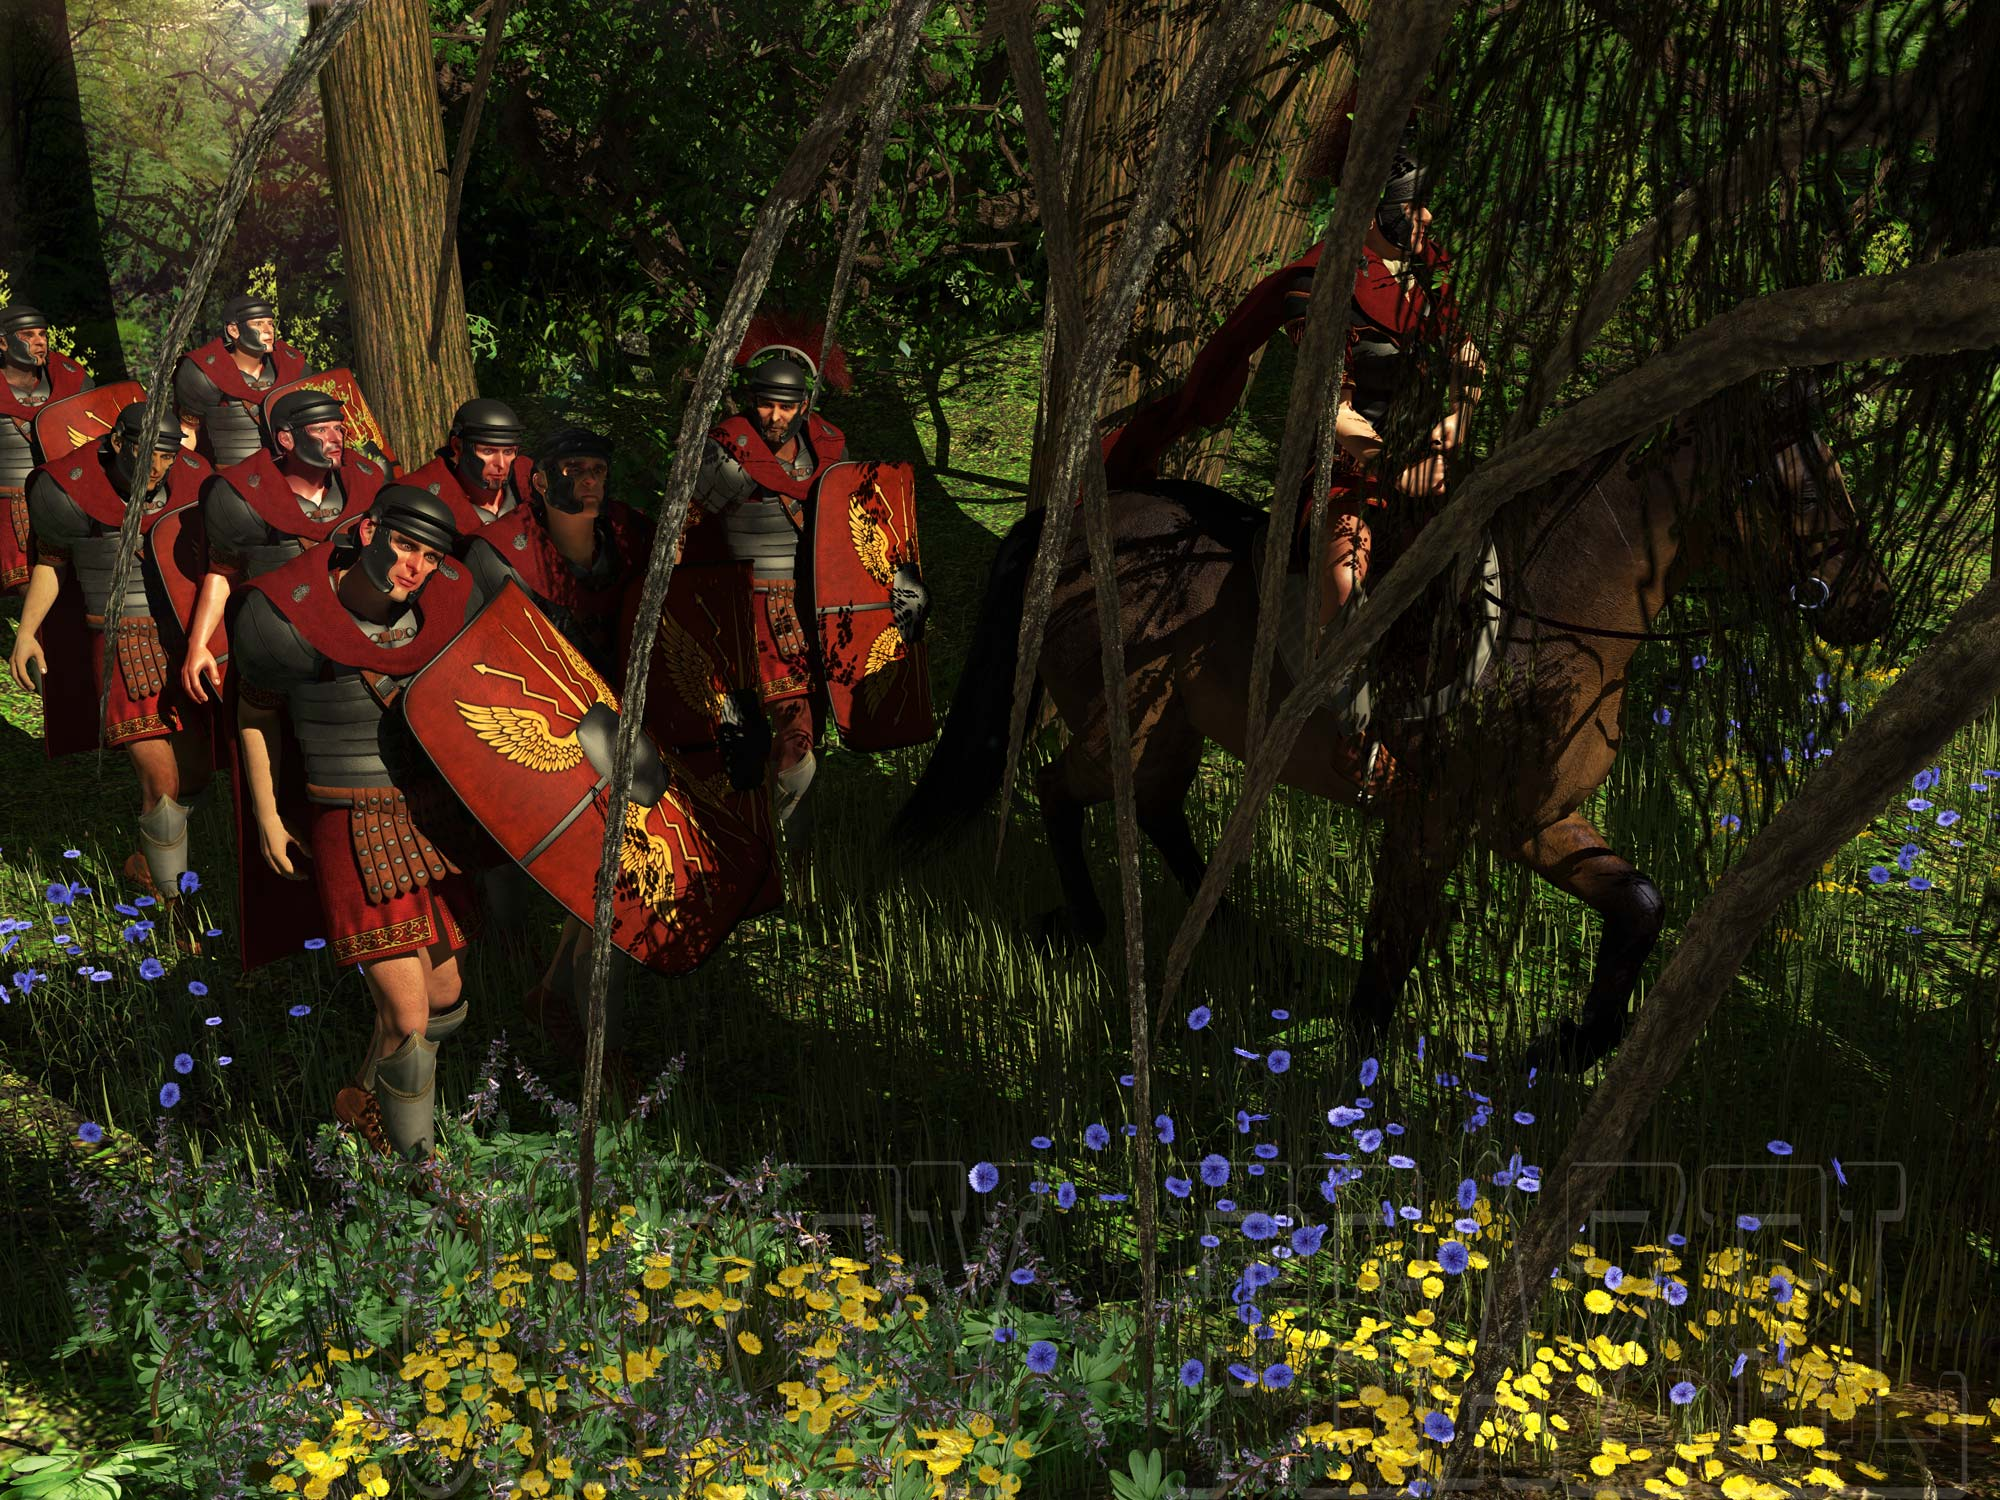 Marching Orders: Around the year 900AD the Germanic tribes defeated two legions of the Roman army and forever changed the face of history...